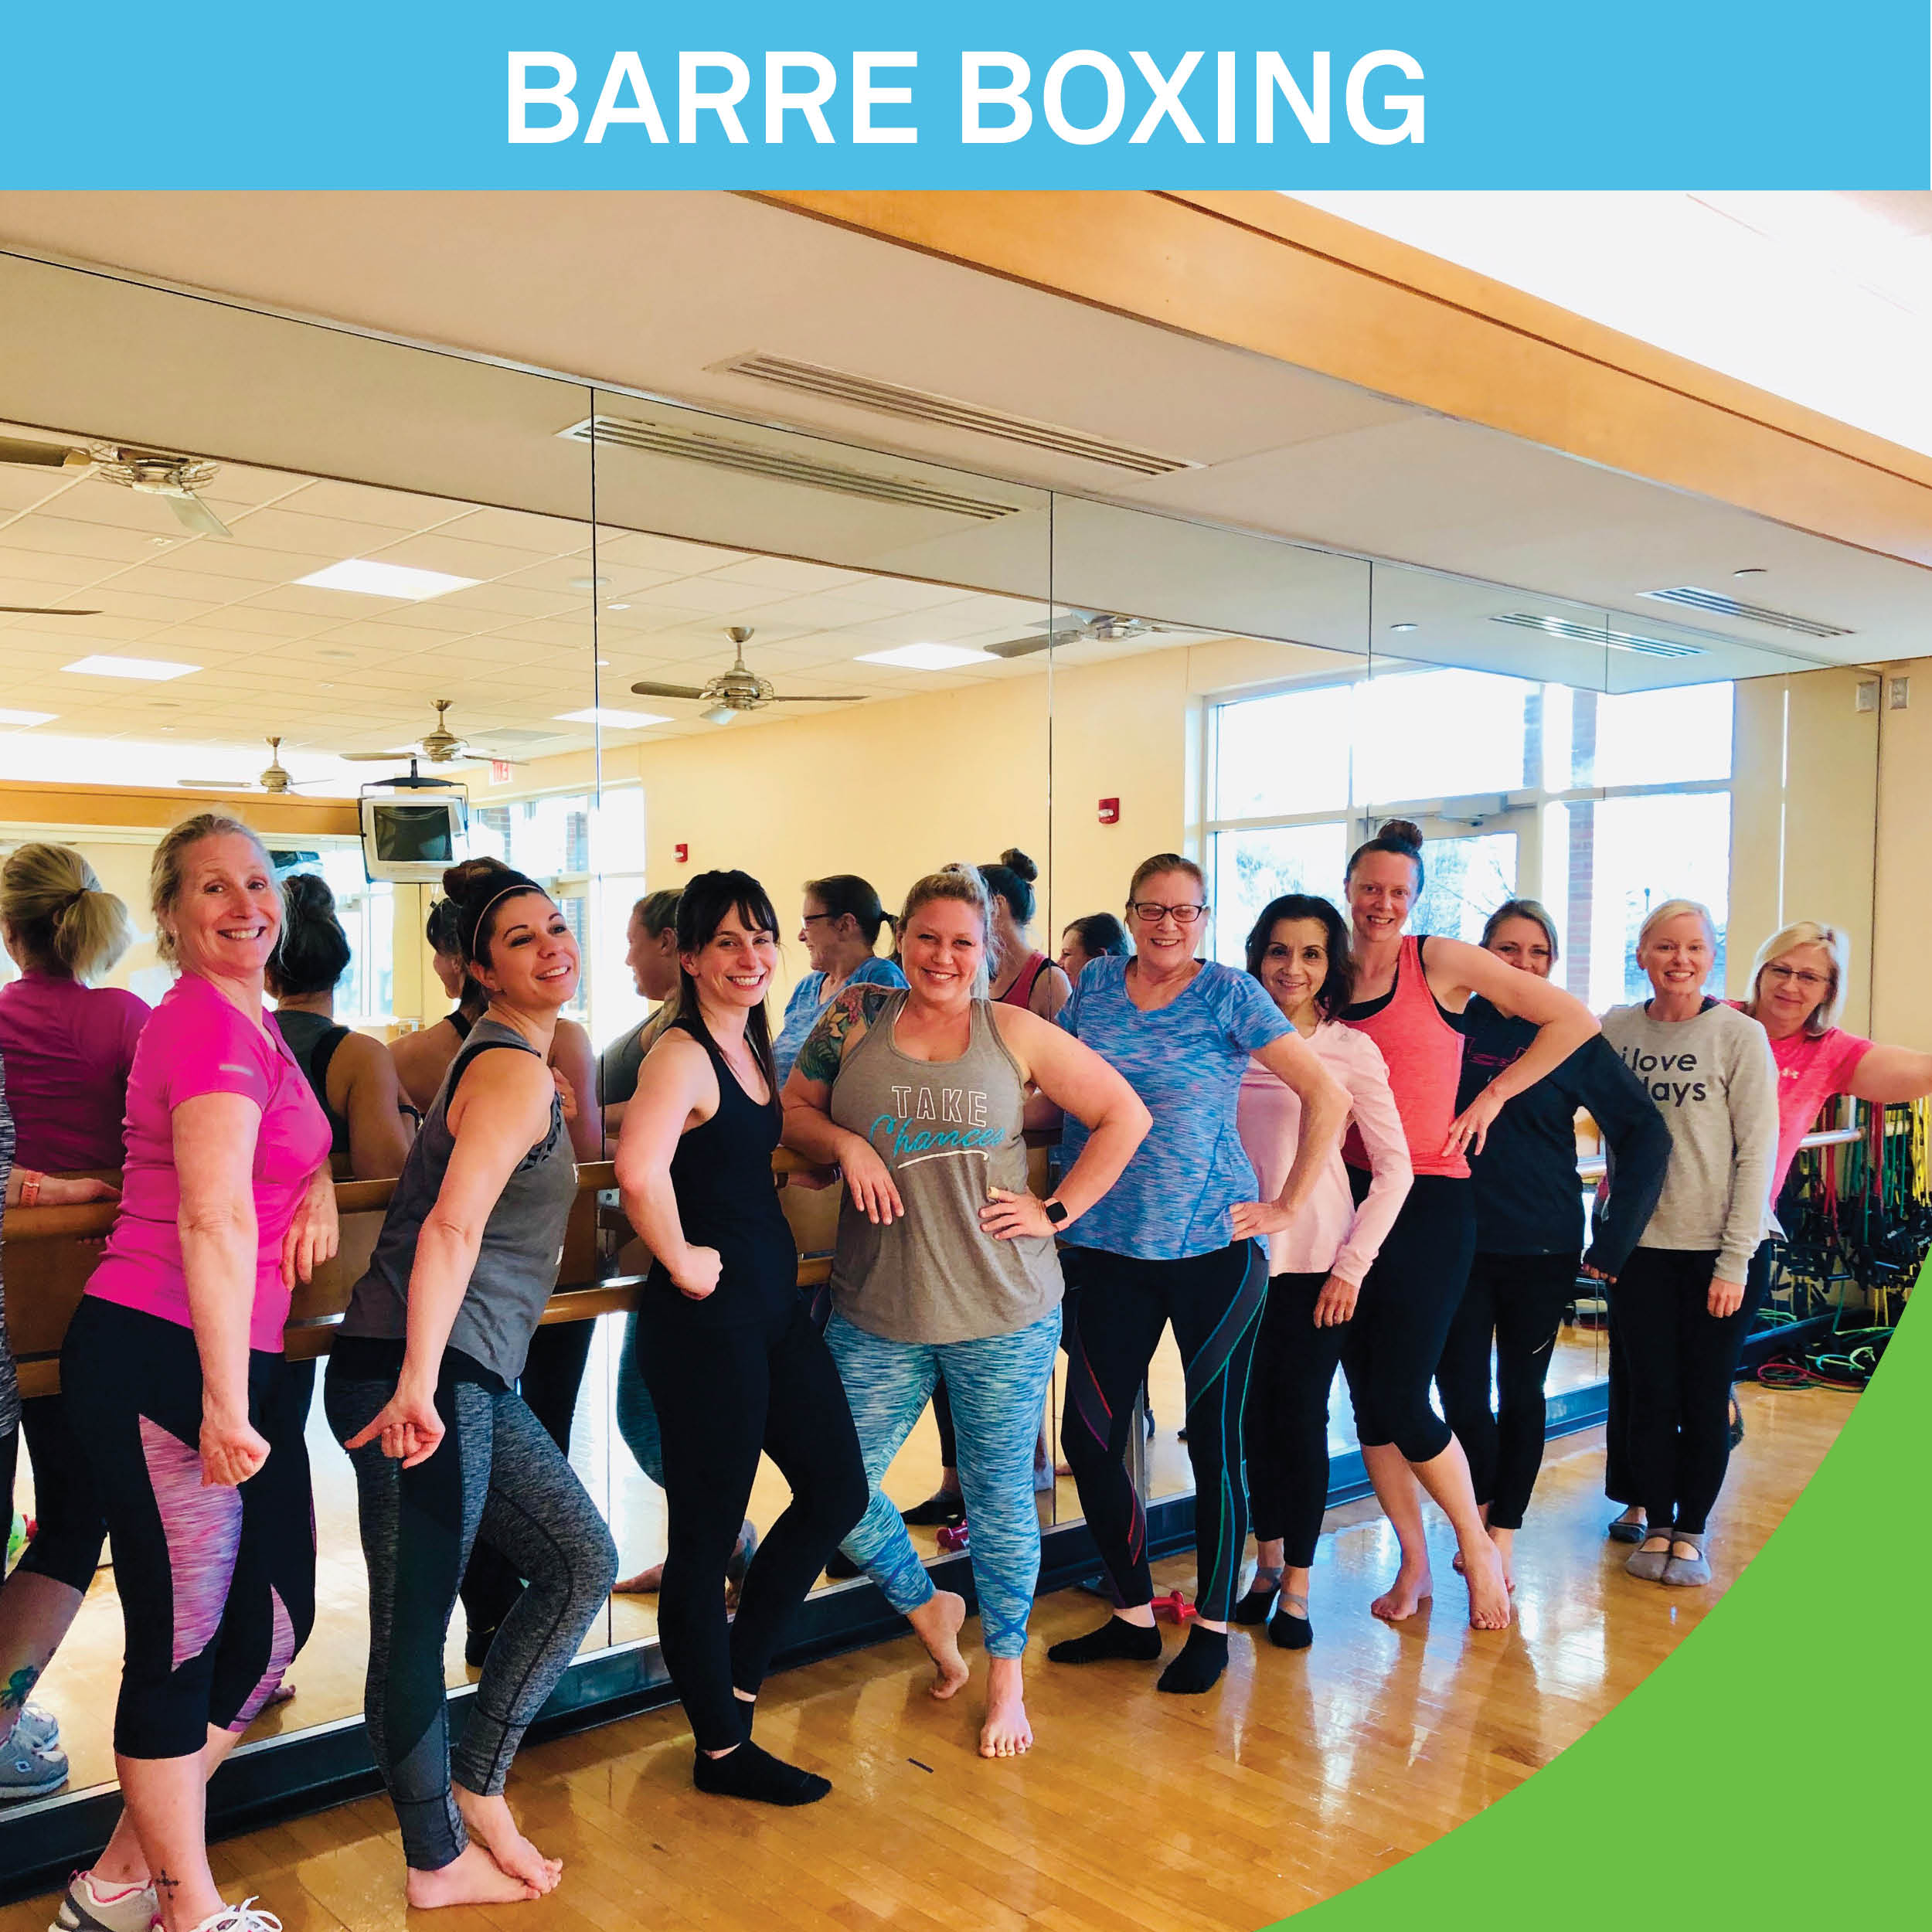 BARRE BOXING